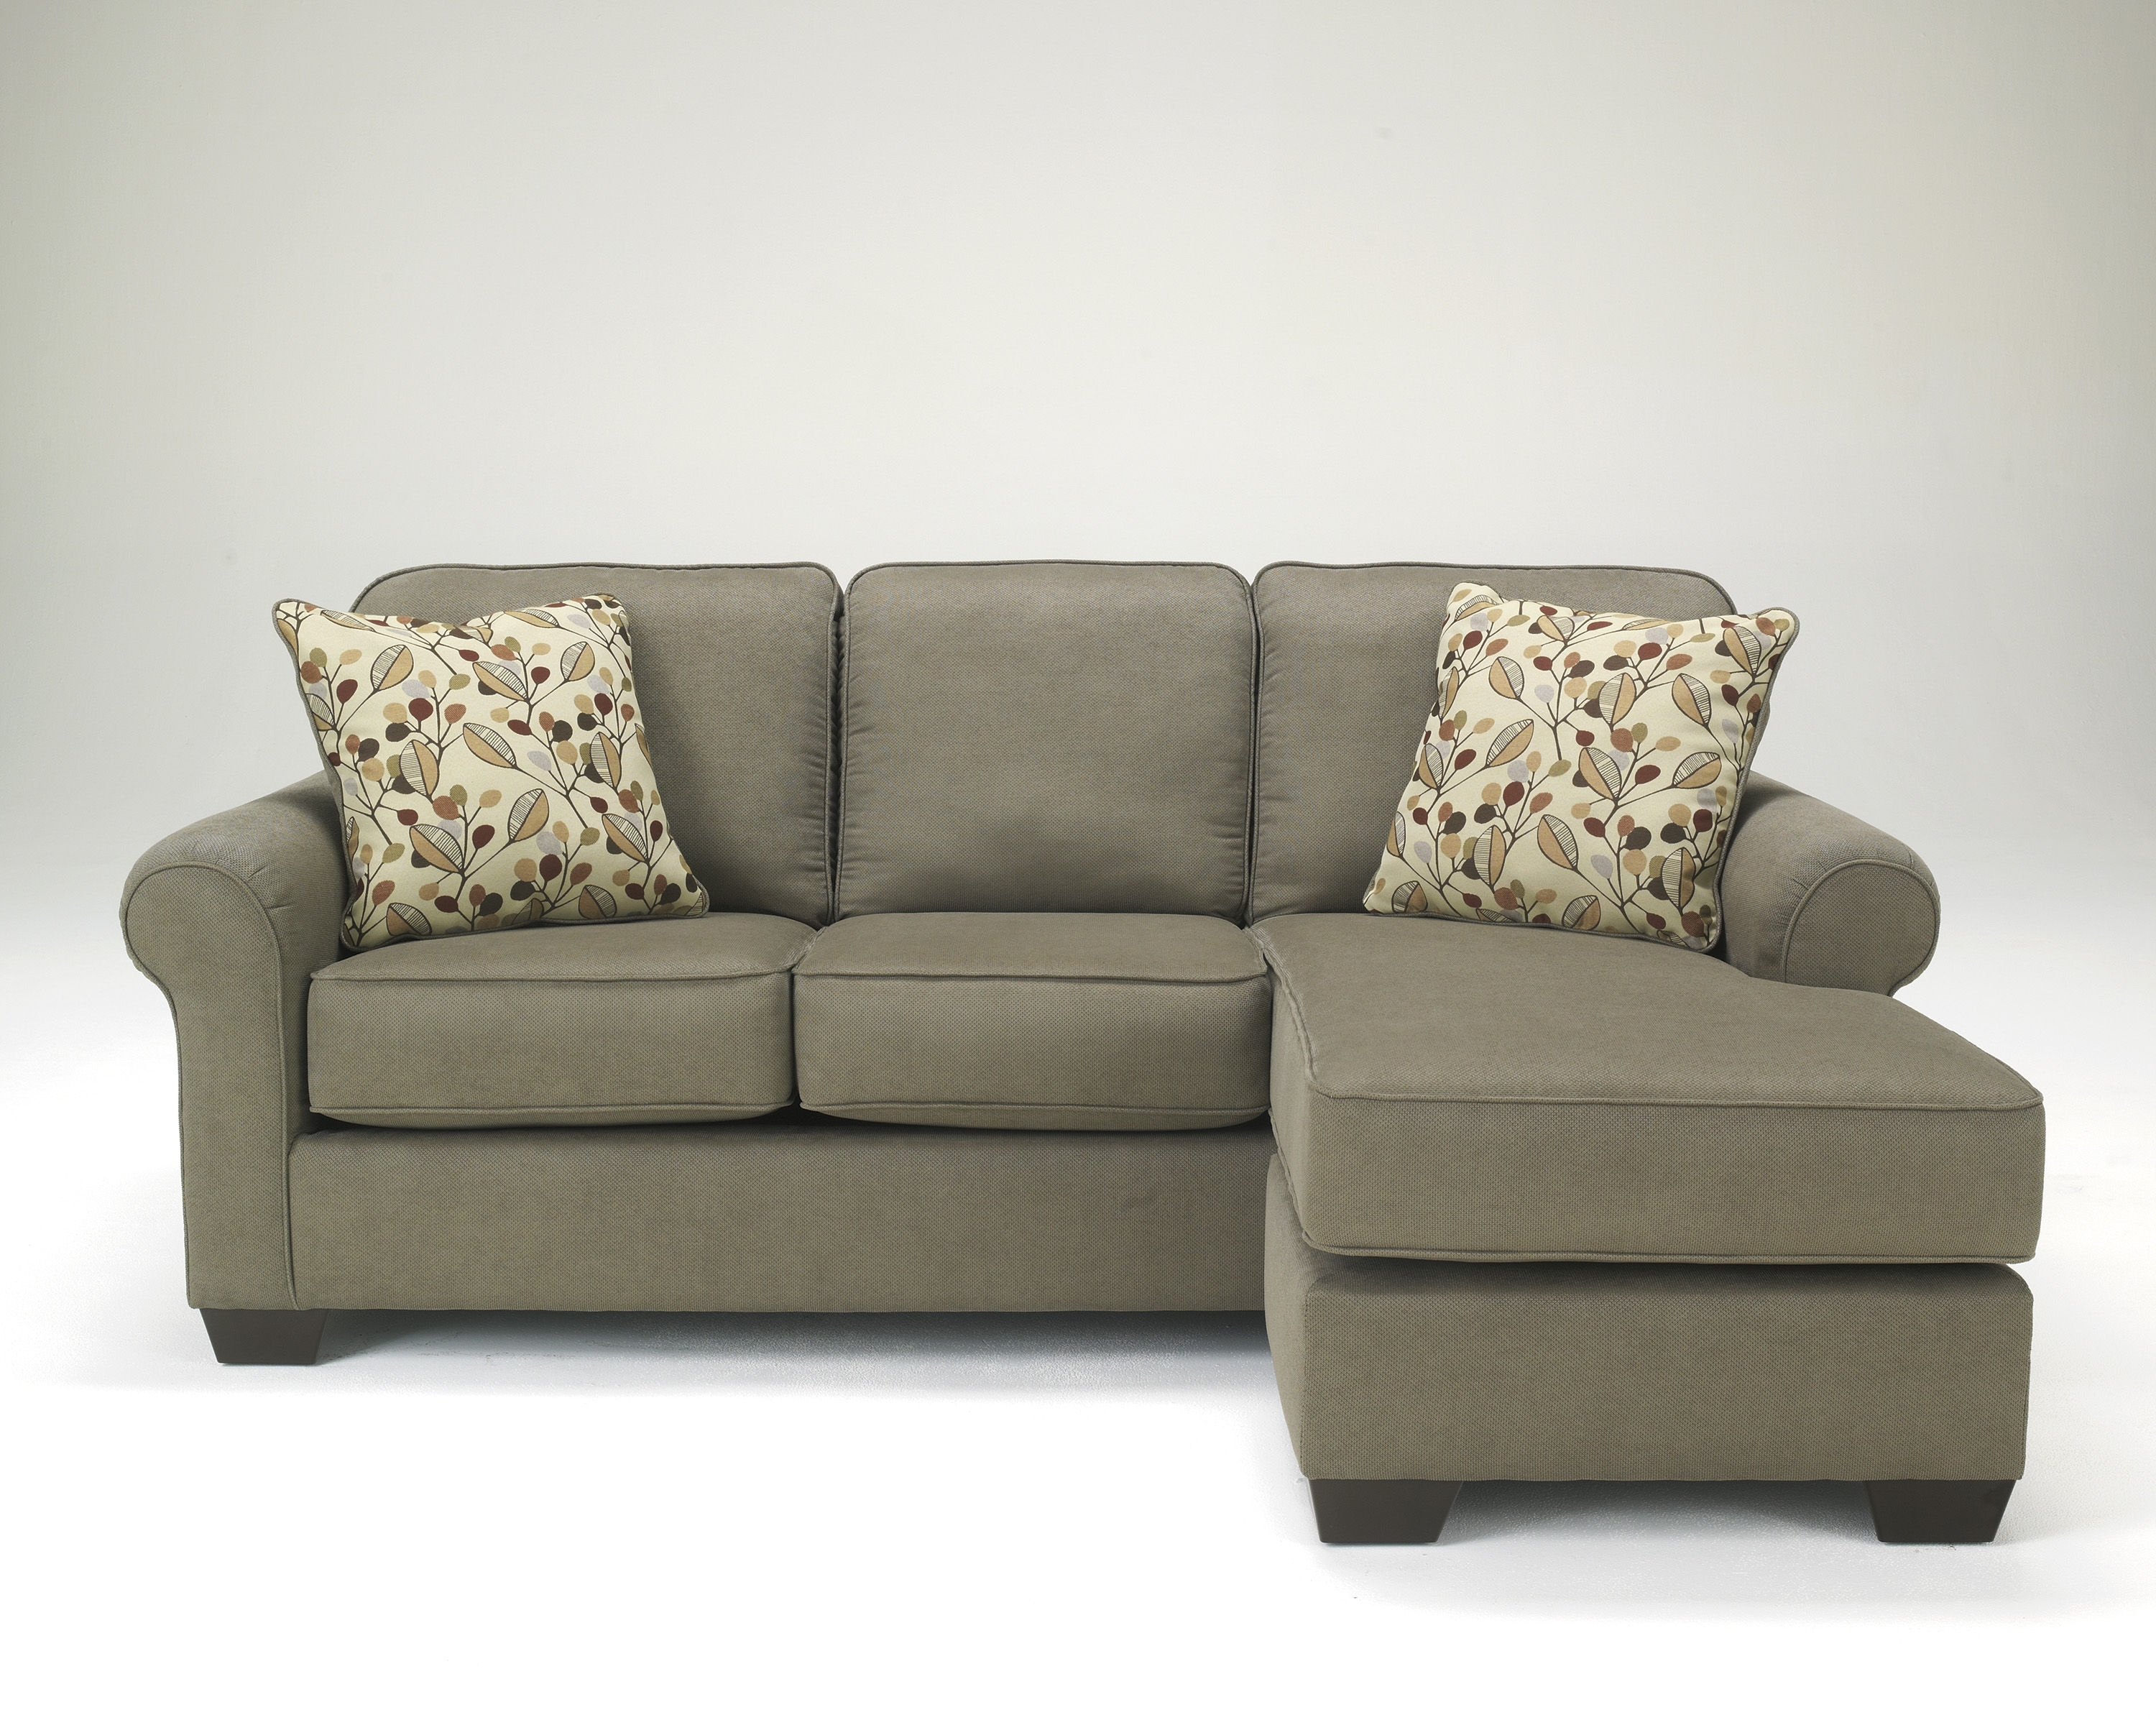 Loveseats With Chaise With Regard To Favorite Ashley Furniture Danely Dusk Sofa Chaise Sectional (View 6 of 15)